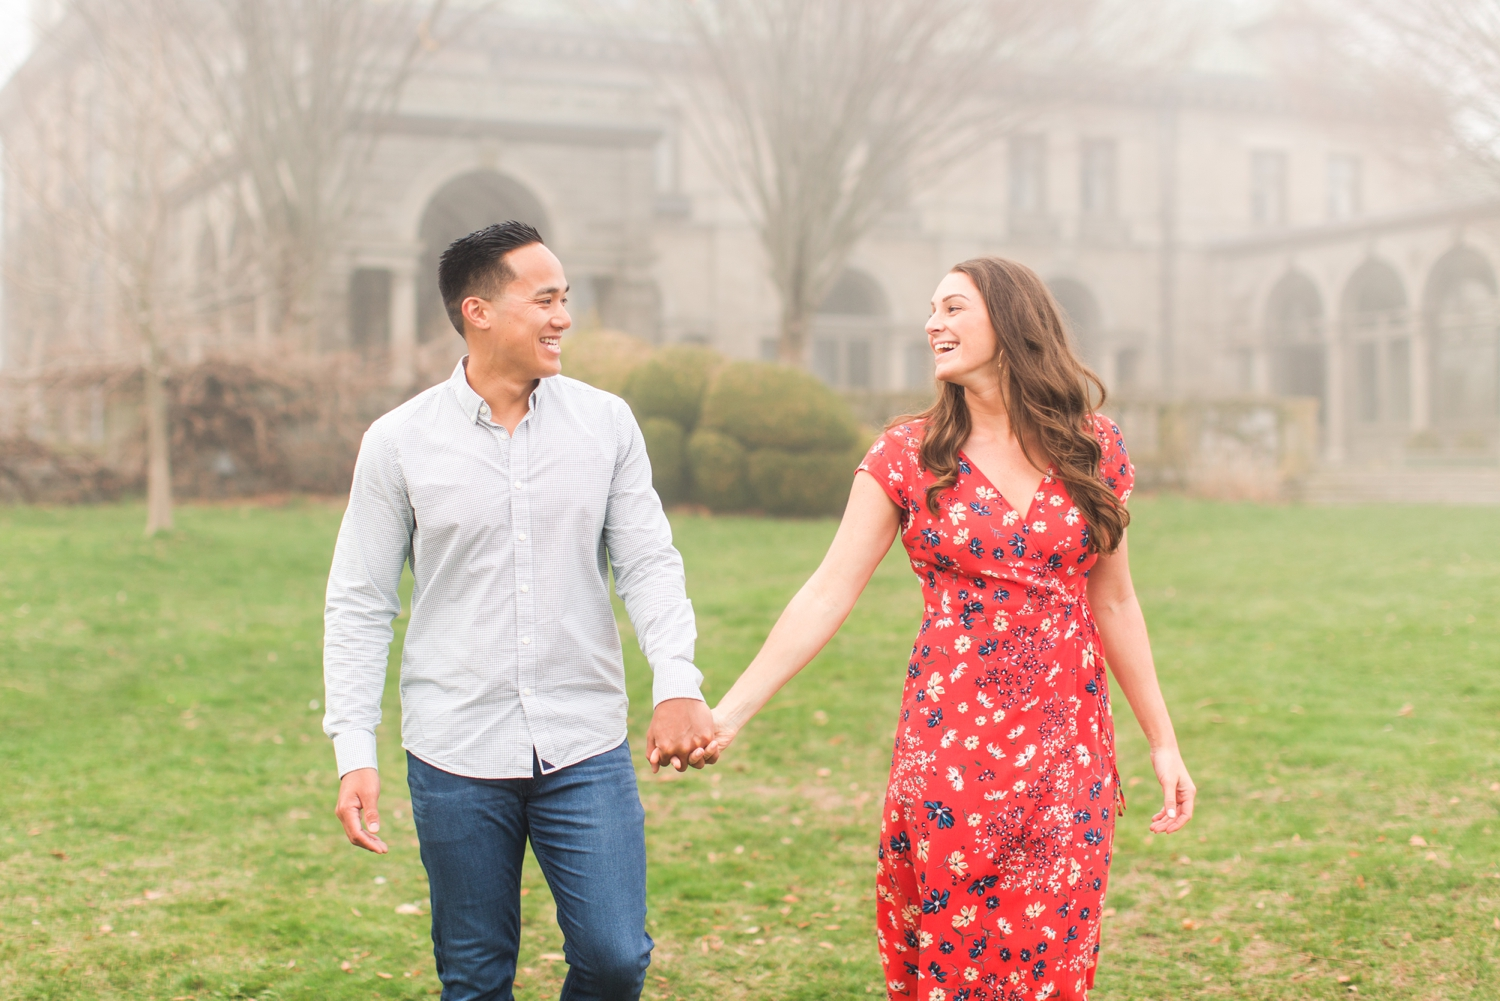 eolia-mansion-harkness-memorial-state-park-engagement-session-waterford-connecticut-wedding-photographer-shaina-lee-photography-photo